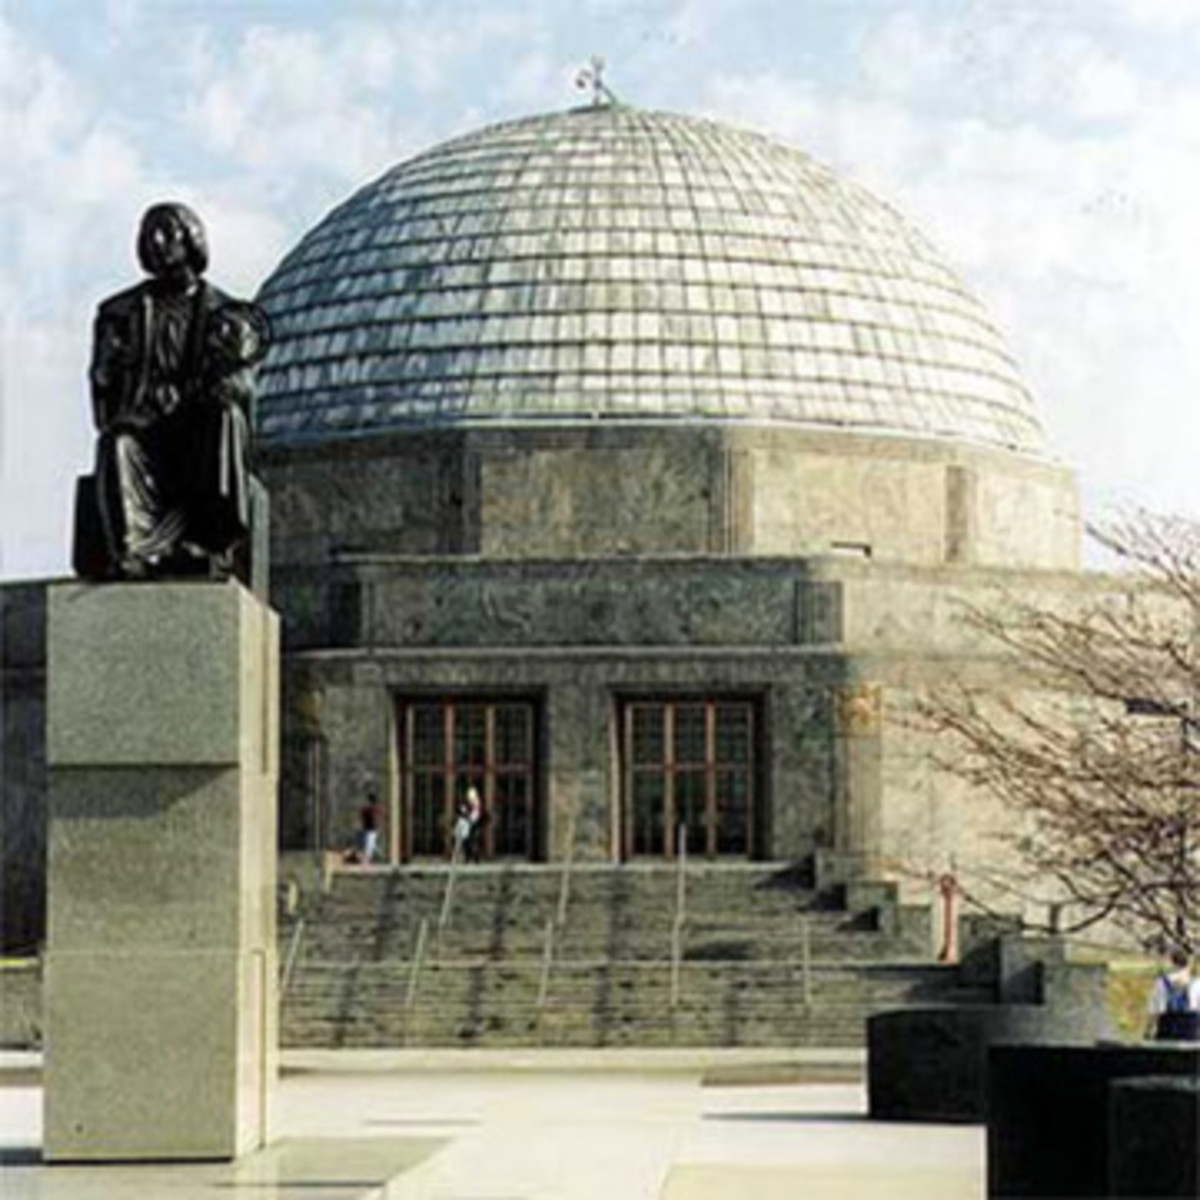 Adler Planetarium offers an age 21+ event every third Thursday where visitors can enjoy cocktails along with views of the Chicago skyline.